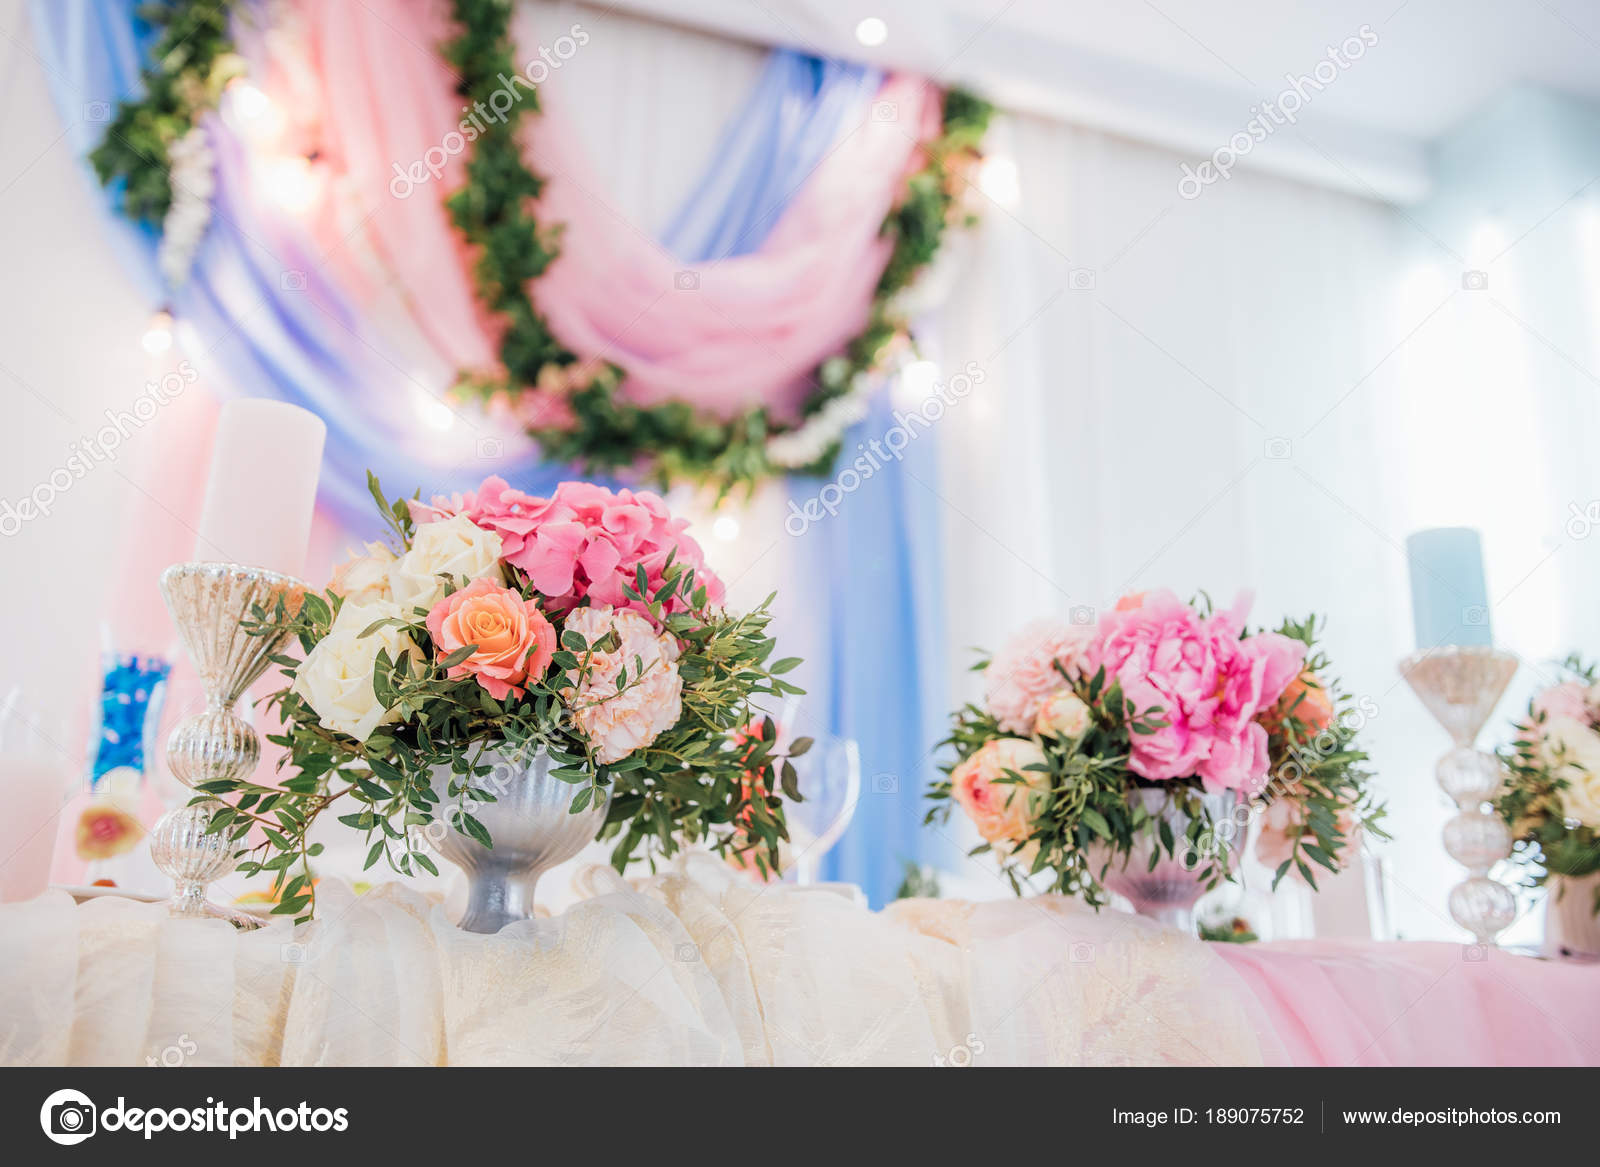 Wedding Table Decorated Gorgeous Flower Bouquets Candles Vintage ...